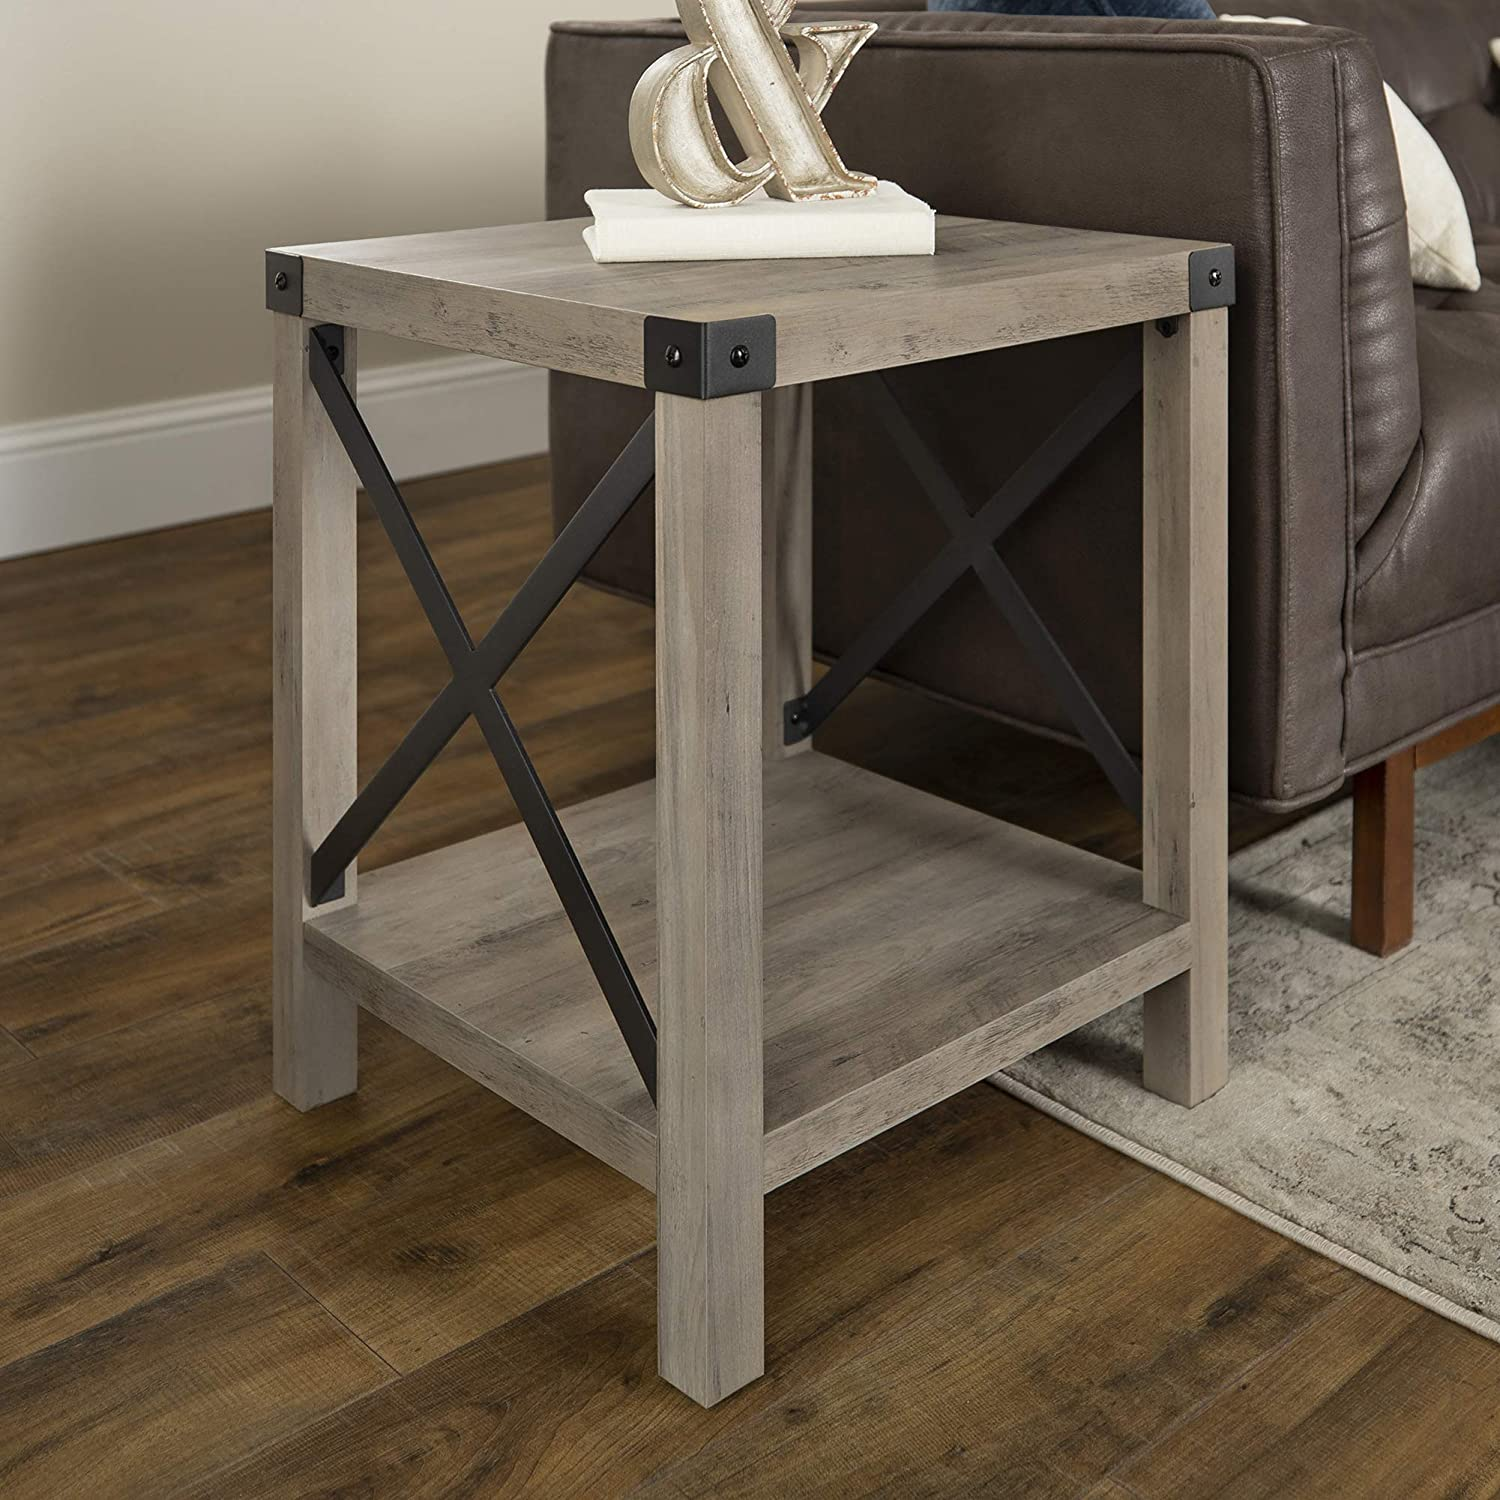 - Amazon.com: Walker Edison Furniture Company Rustic Modern Farmhouse Metal  And Wood Square Side Accent Living Room Small End Table, 18 Inch, Gray  Wash: Kitchen & Dining